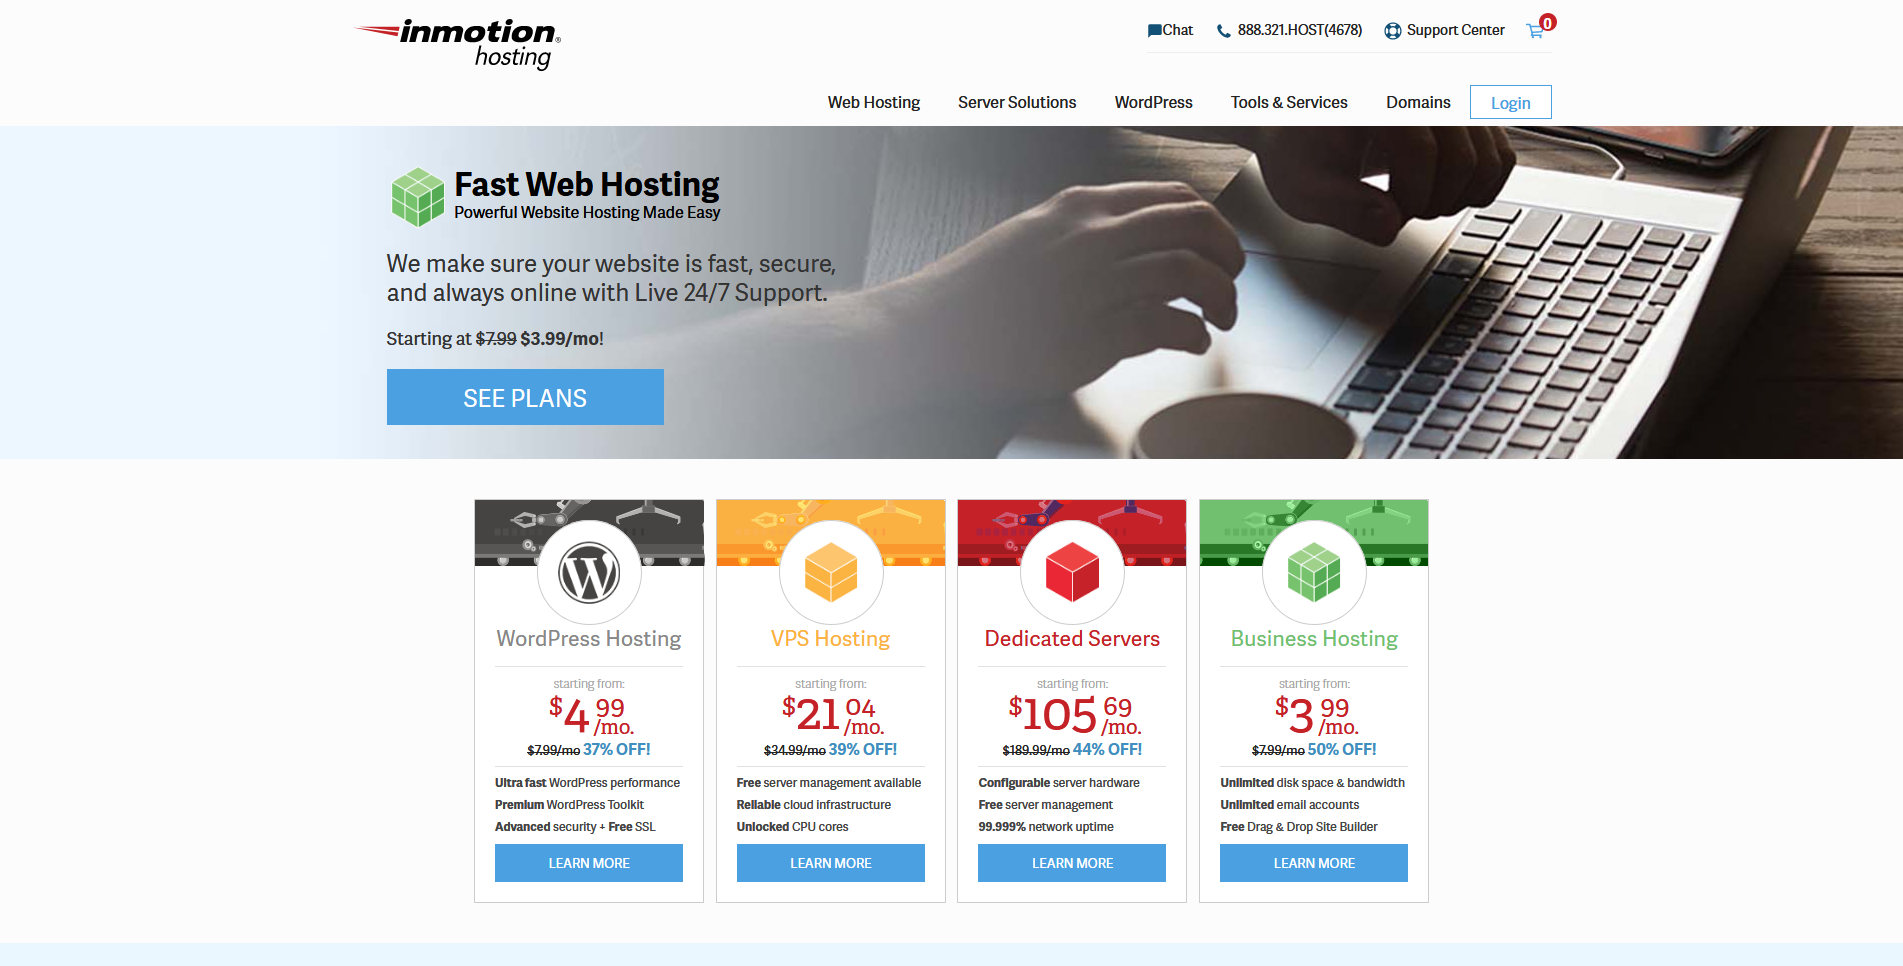 InMotion Hosting Managed Web Hosting